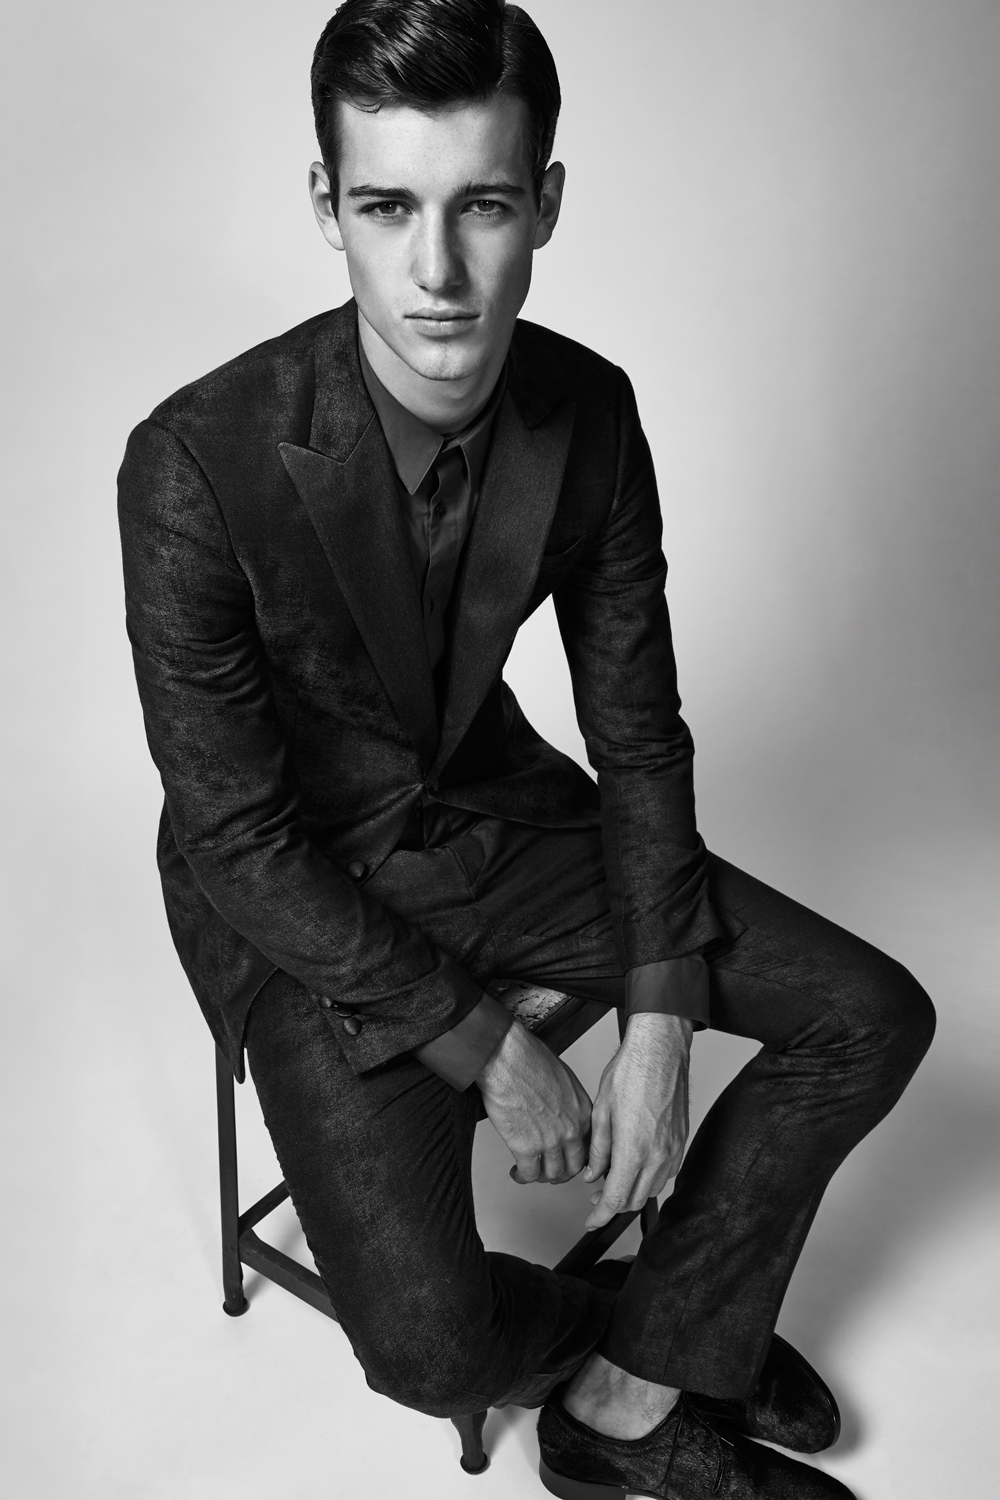 Robbie Beeser   of   New York Models     HEIGHT: 6'2"